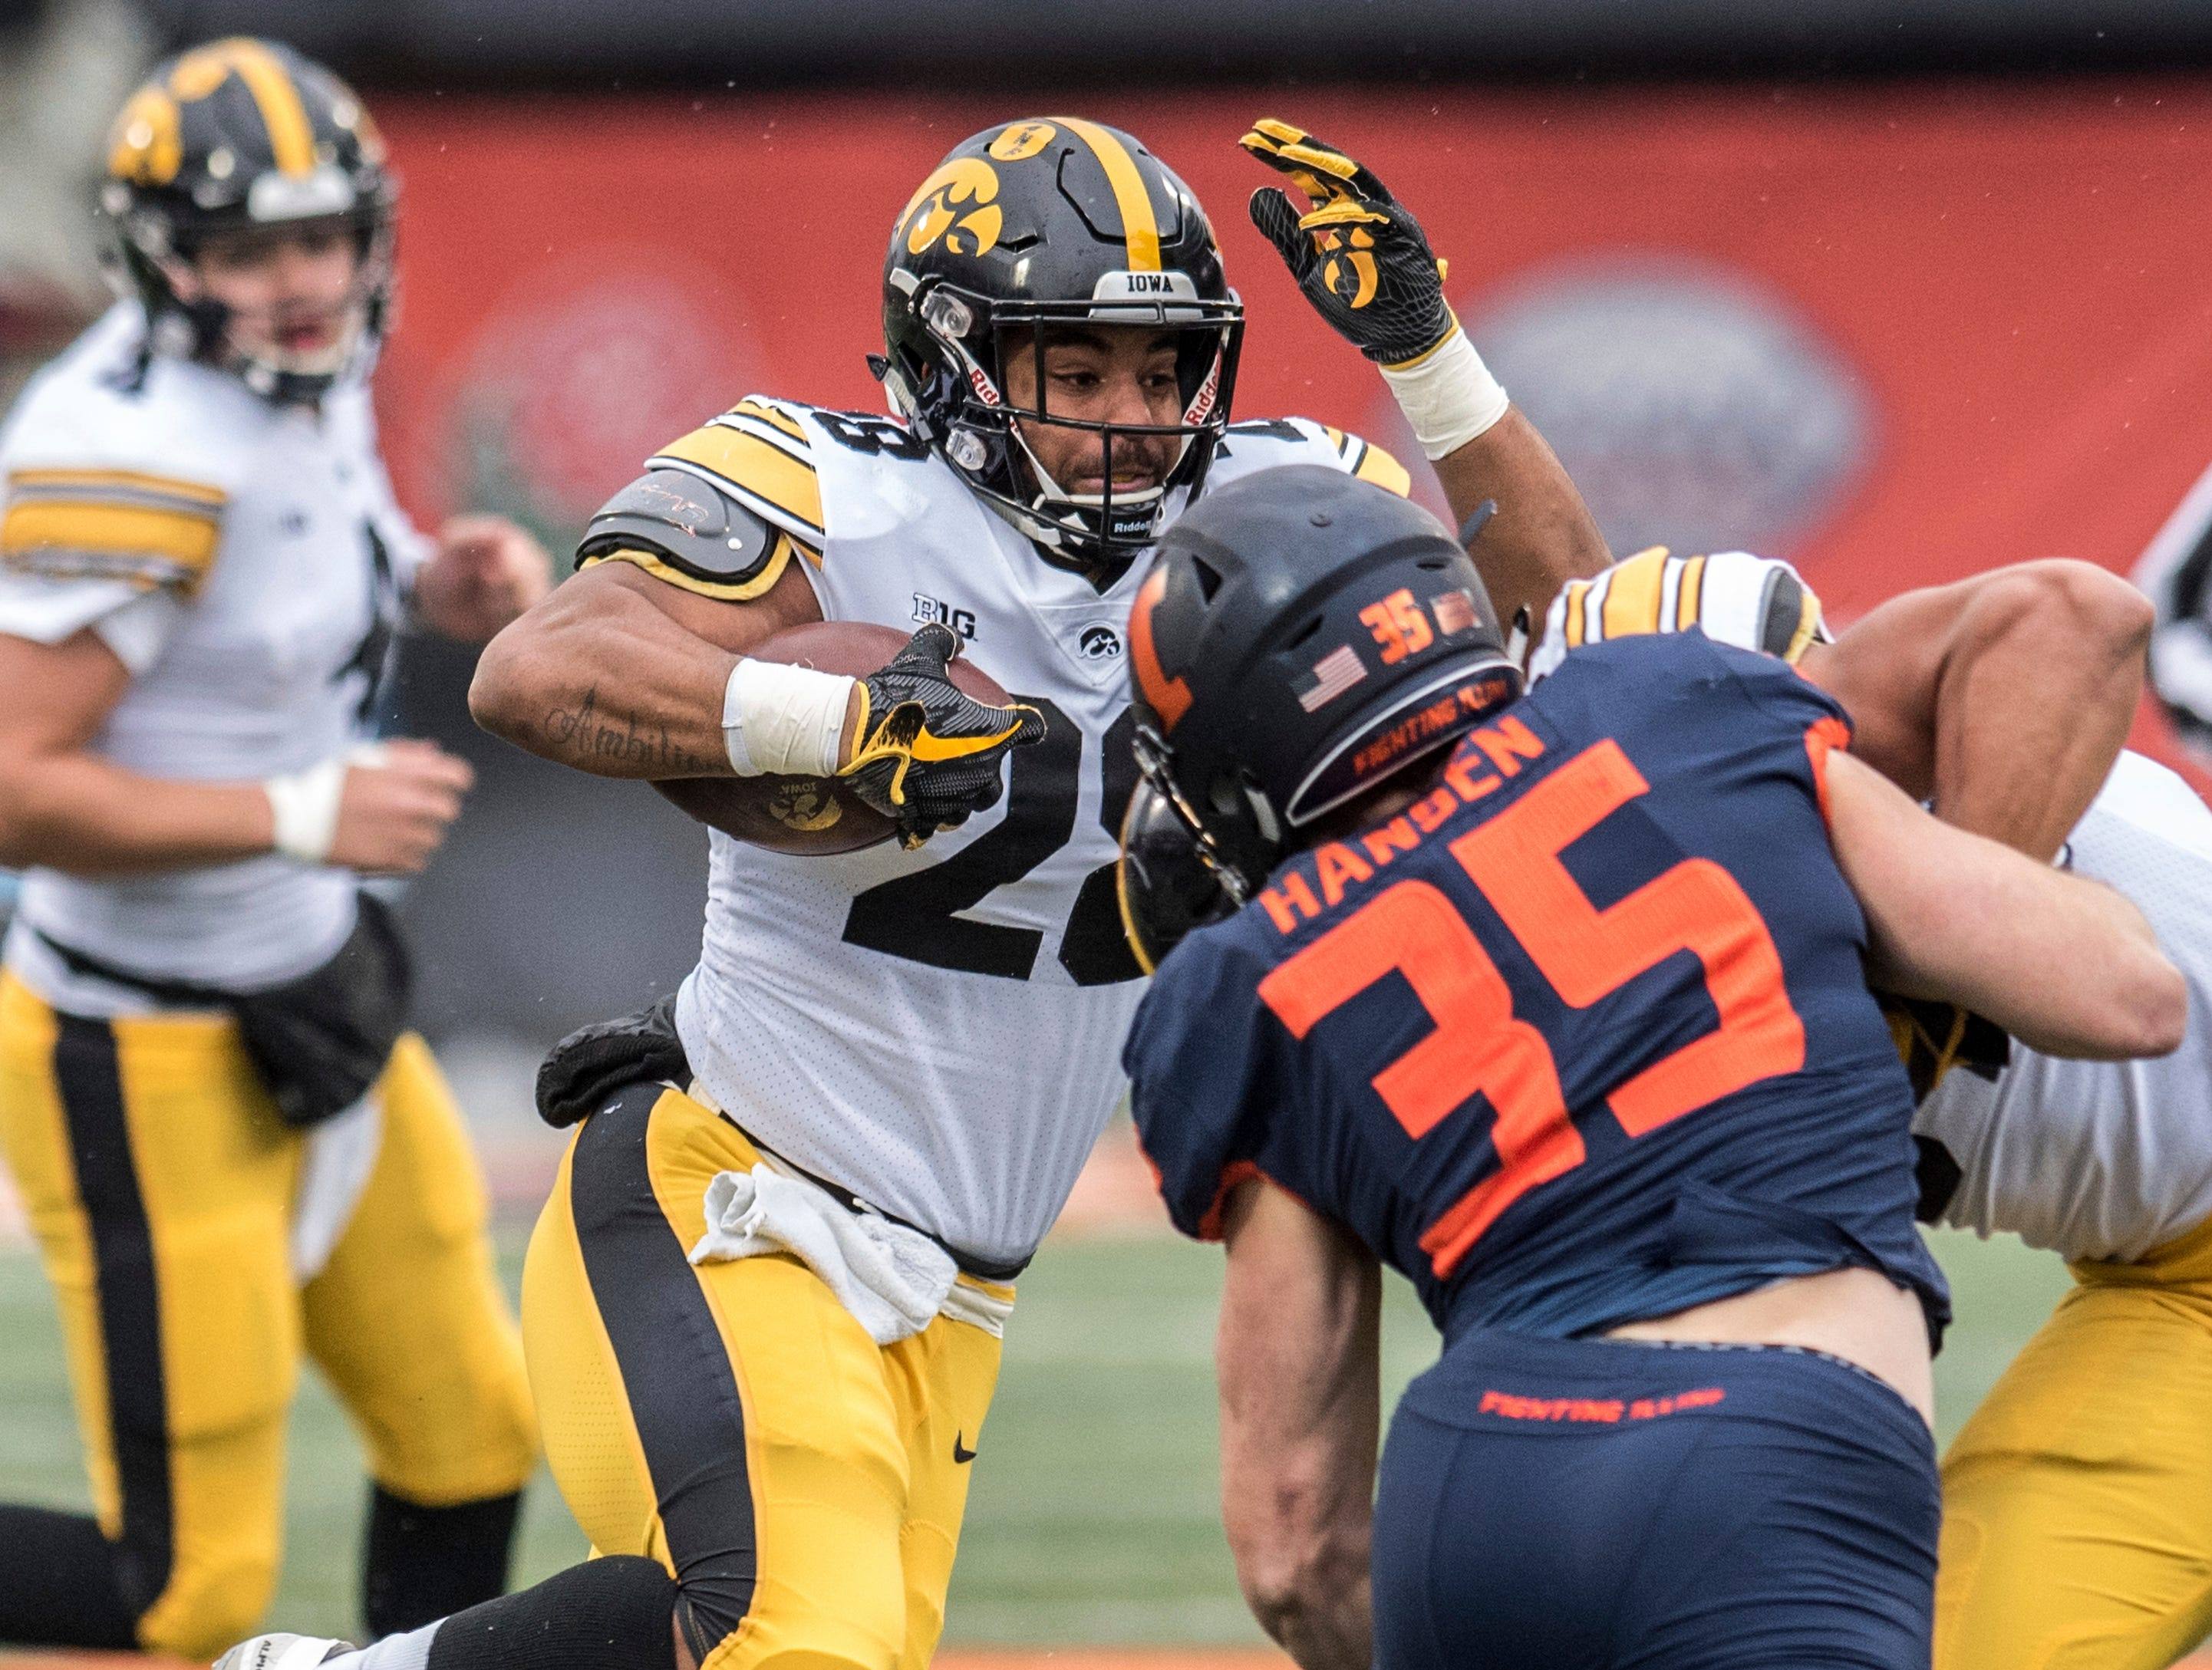 Iowa's Toren Young (28) runs the ball in the first half of a NCAA college football game against Illinois, Saturday, Nov. 17, 2018, in Champaign, Ill.